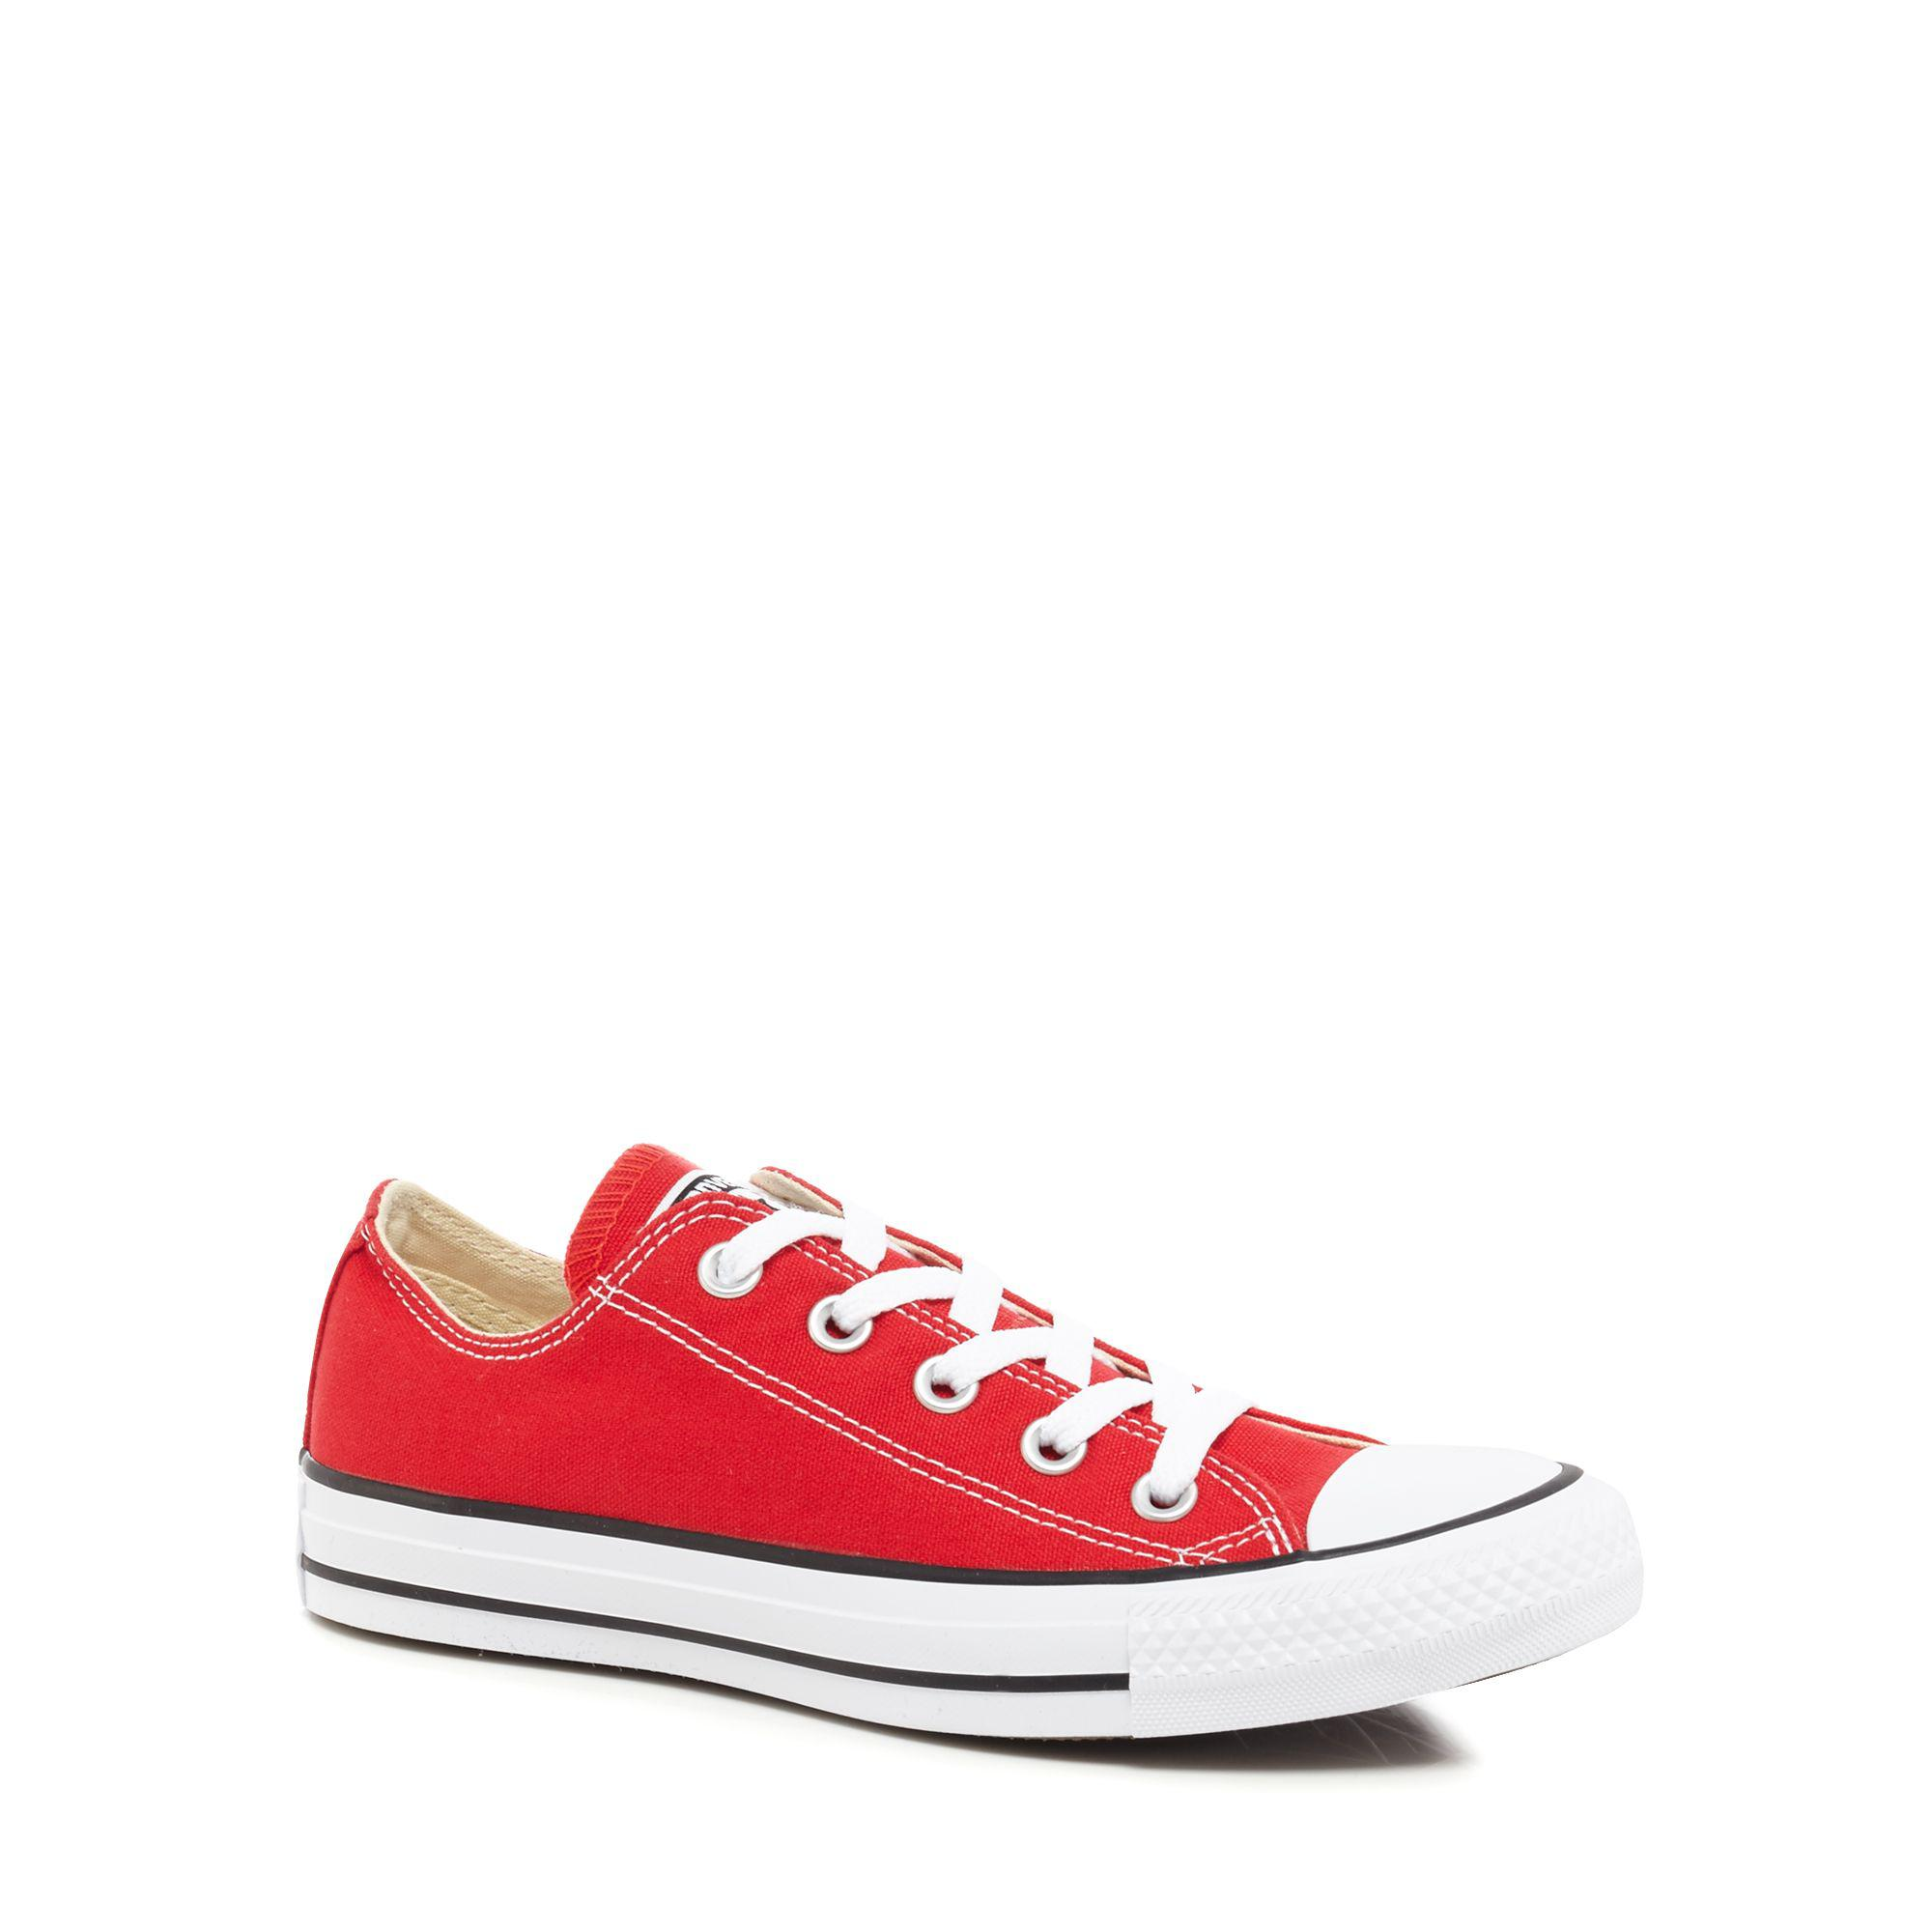 9abae66d3888 Converse Red Canvas  all Star  Lace Up Shoes in Red - Lyst